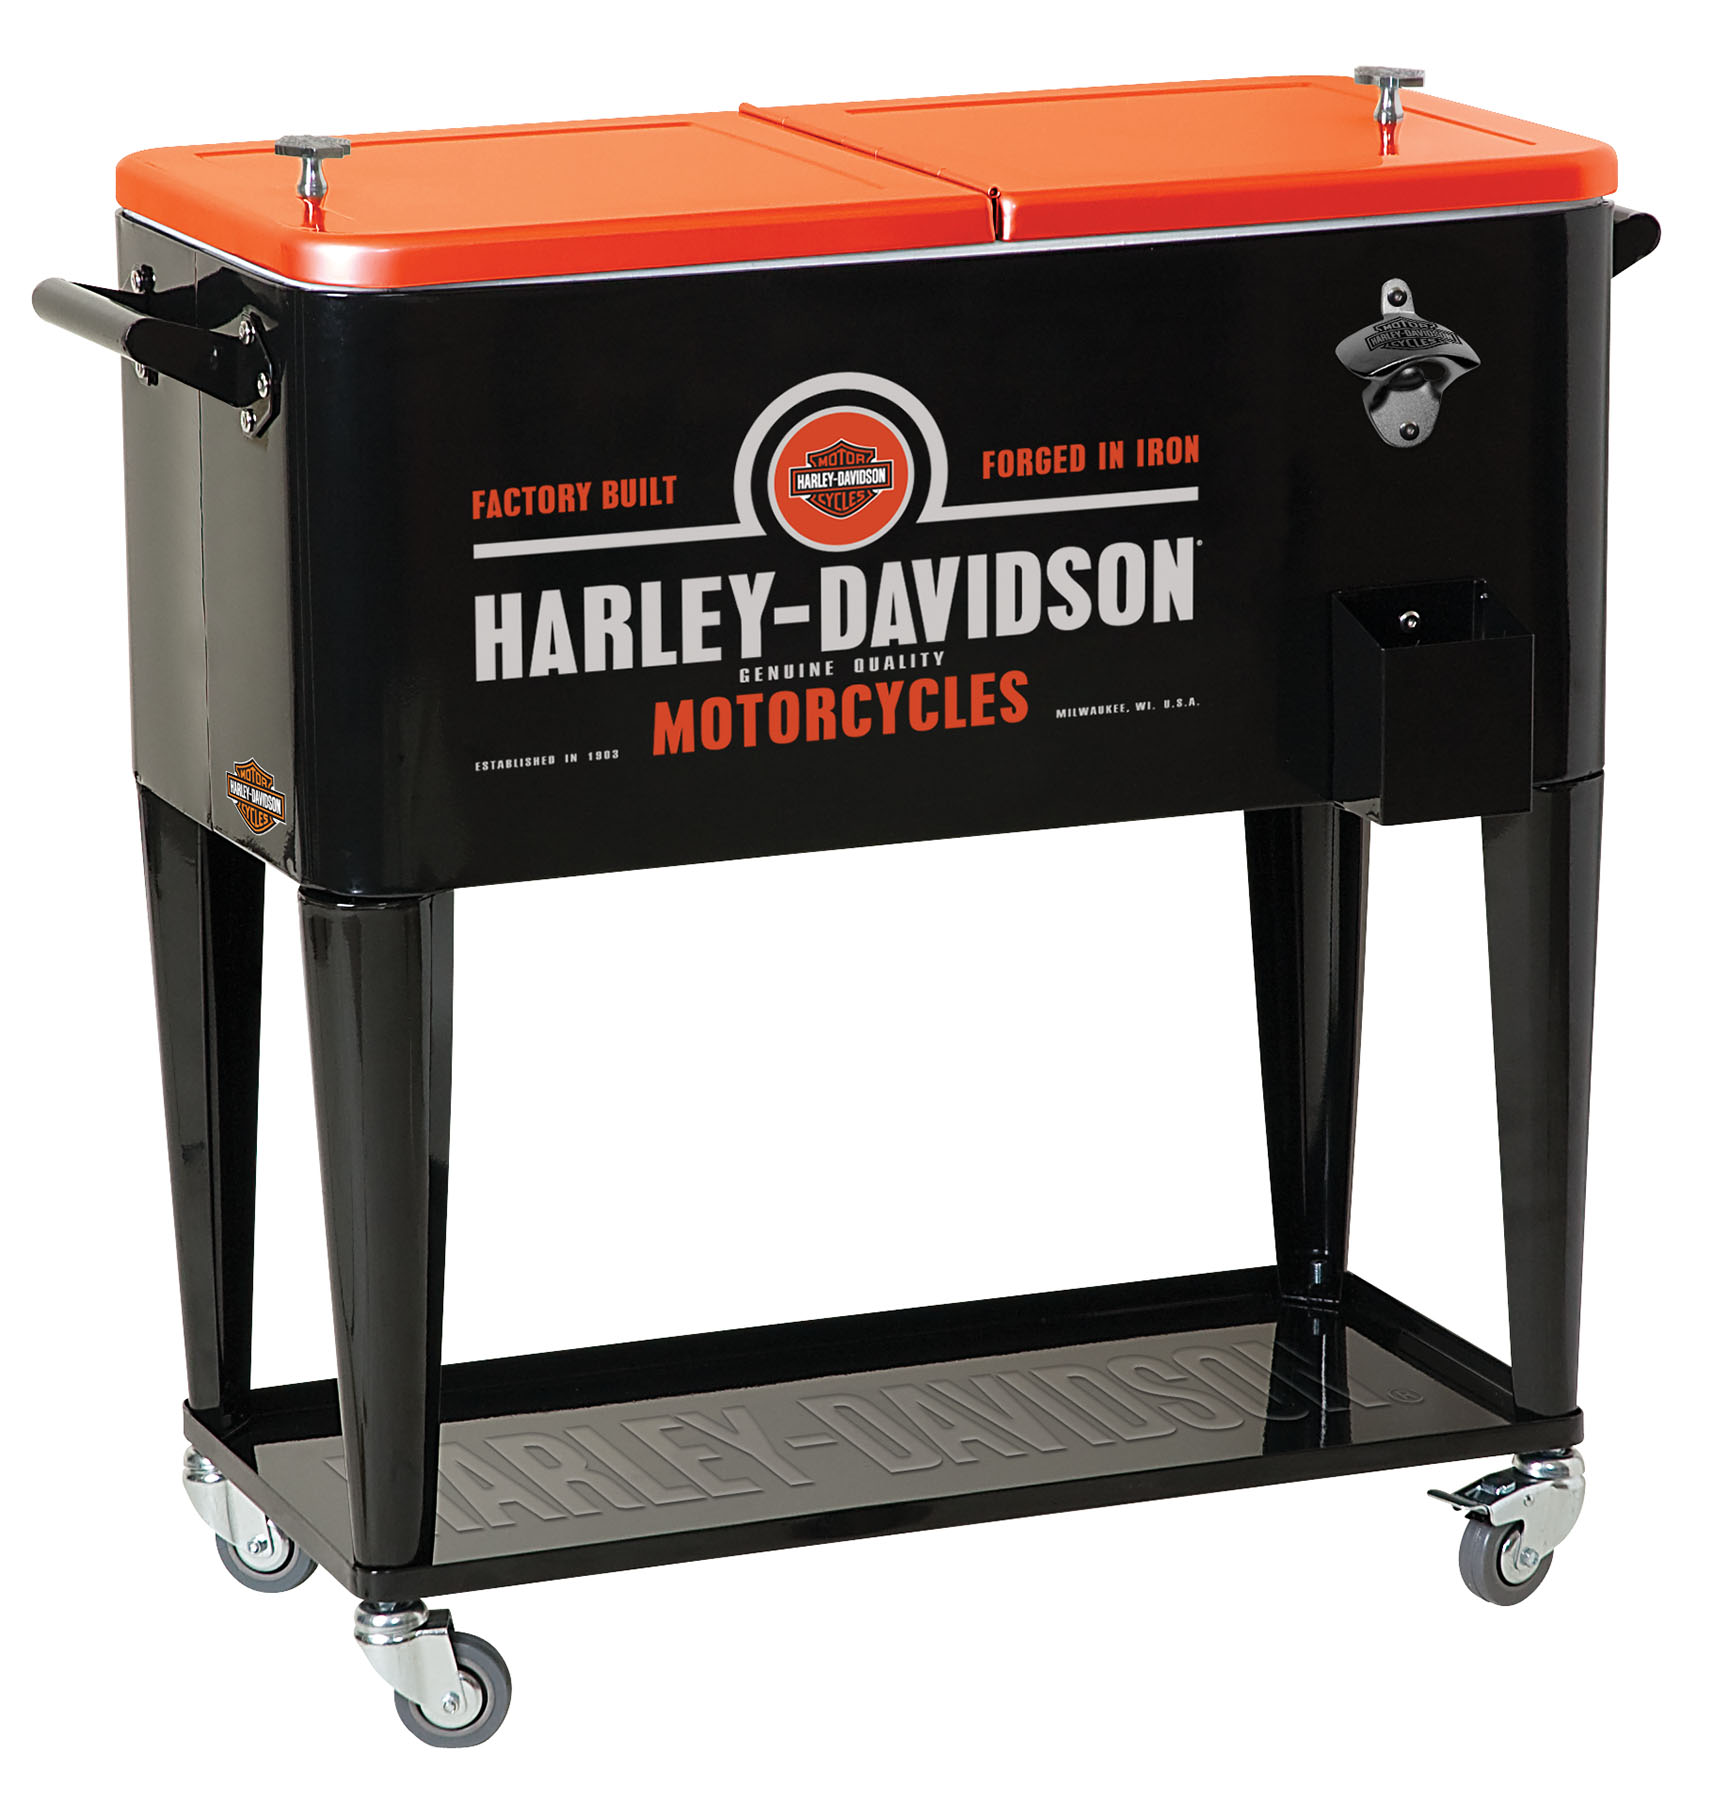 Harley-Davidson Forged In Iron Rolling Cooler HDL-10071